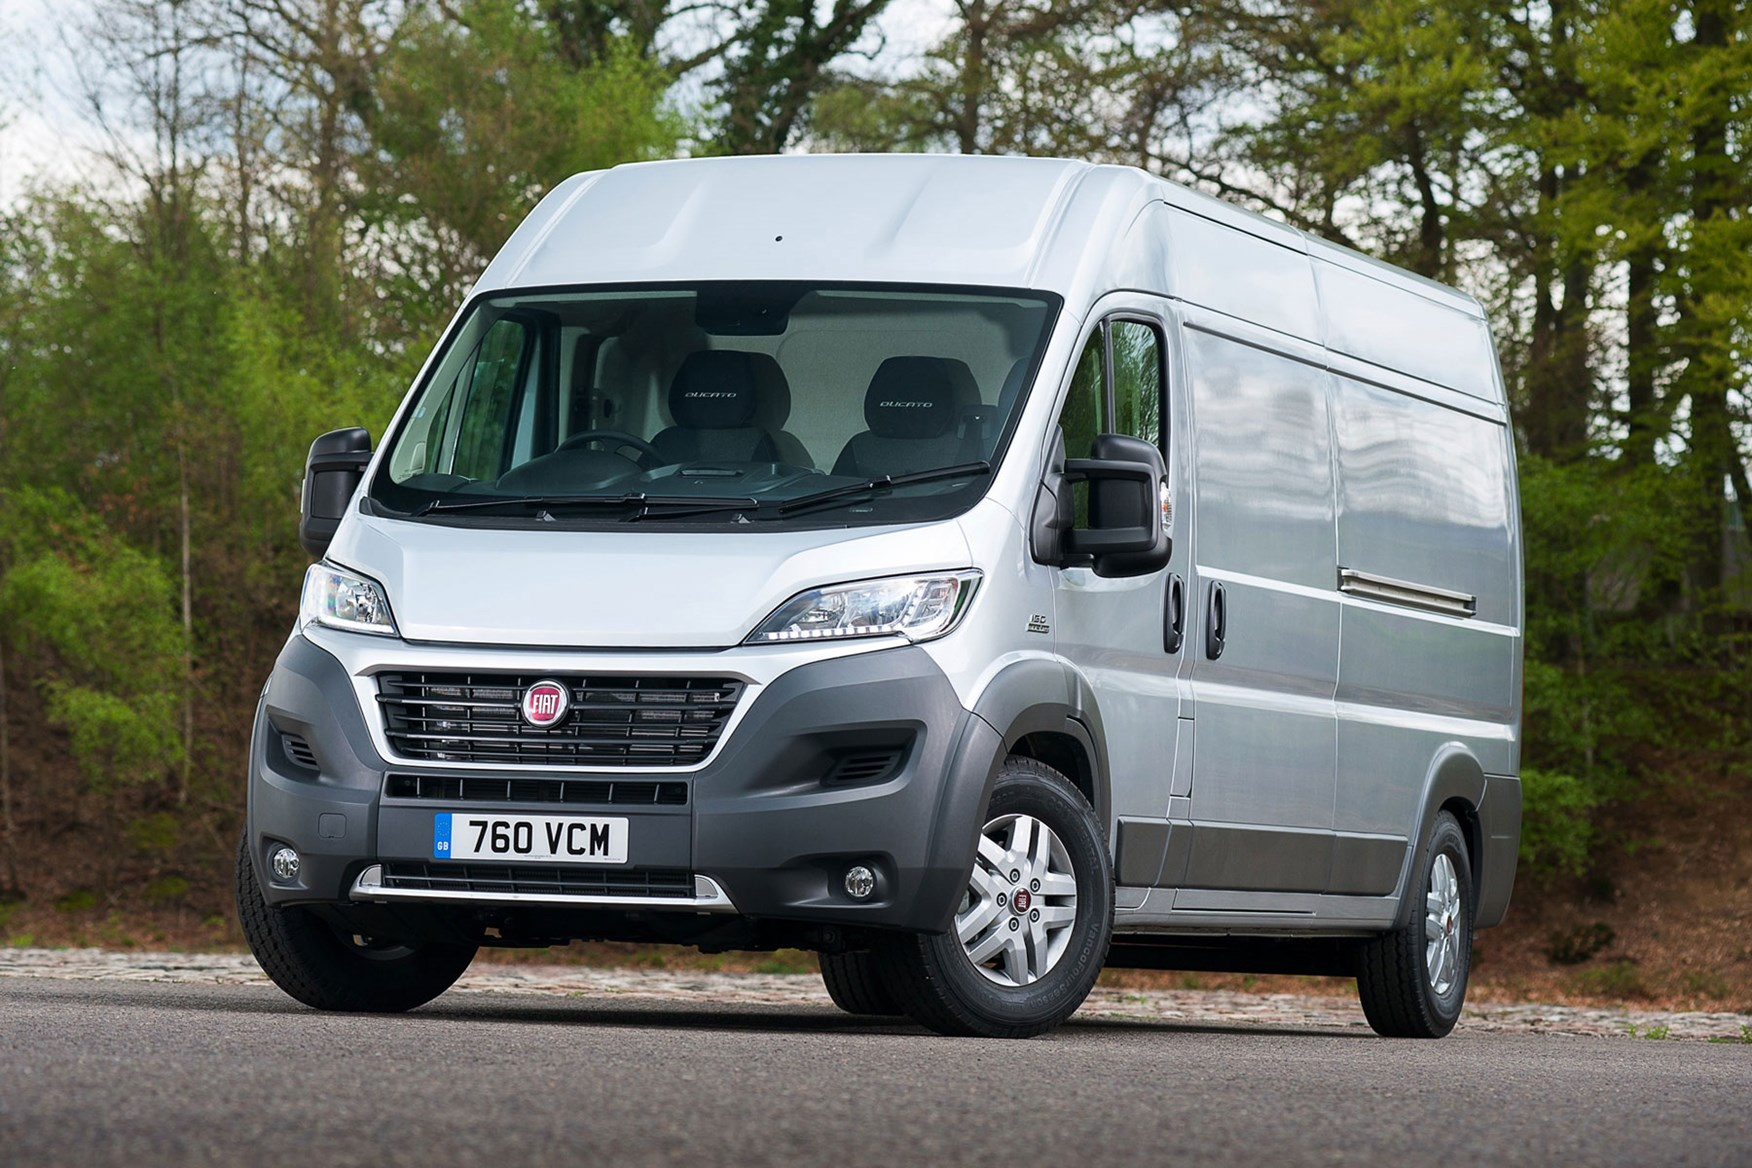 001aaf40c8 Fiat Ducato - where does it rank among the best large vans